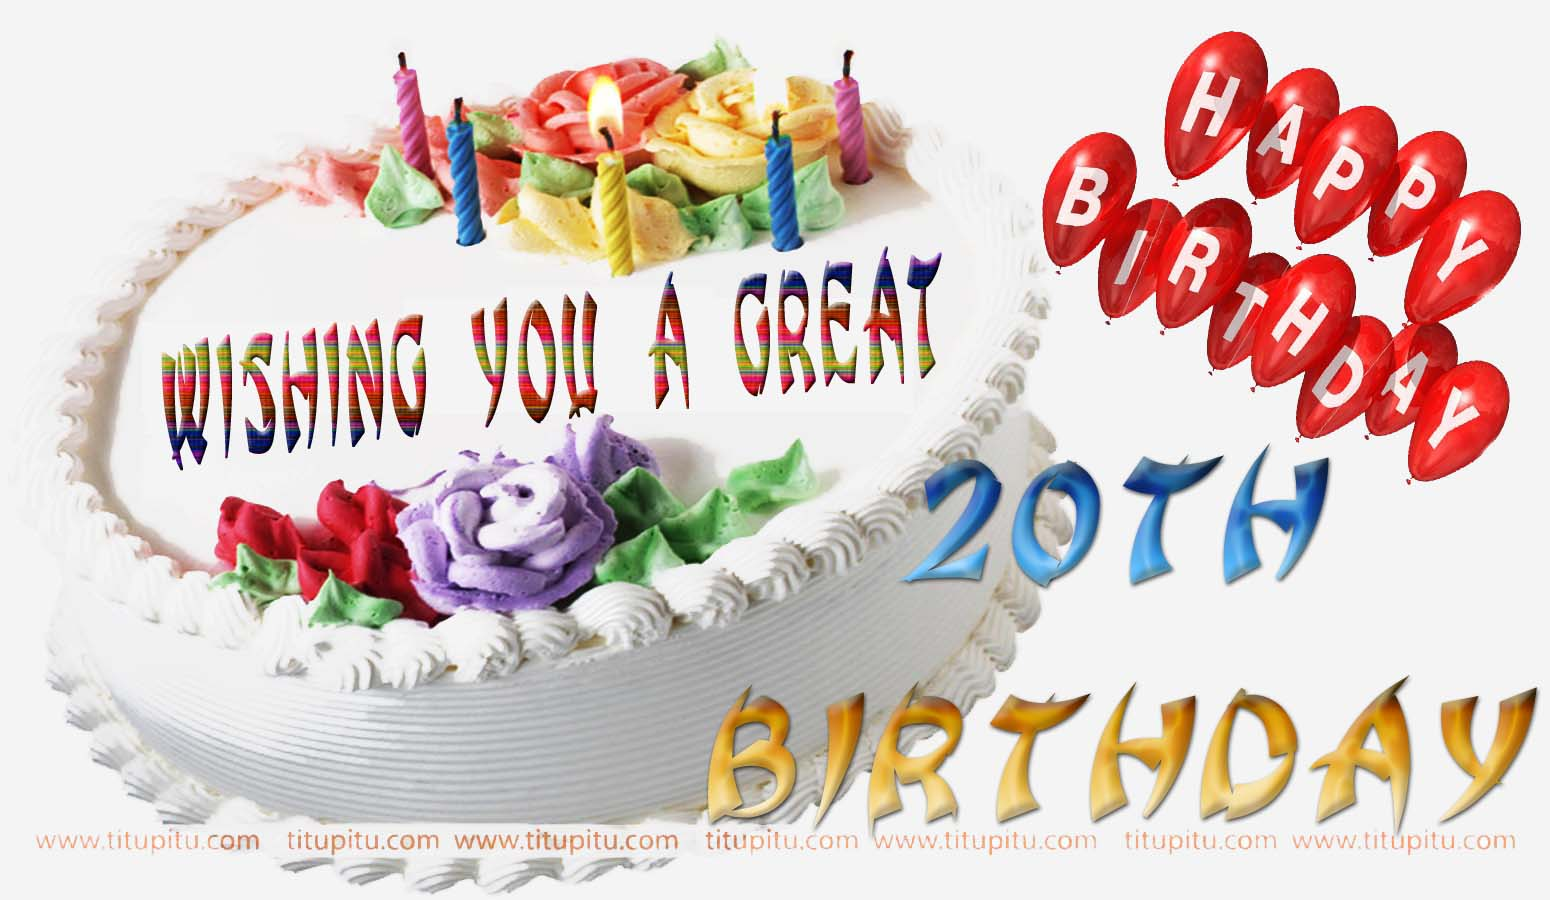 20th Birthday Wishes Message And Wallpaper For Everyone Happy 20th Birthday Wishes